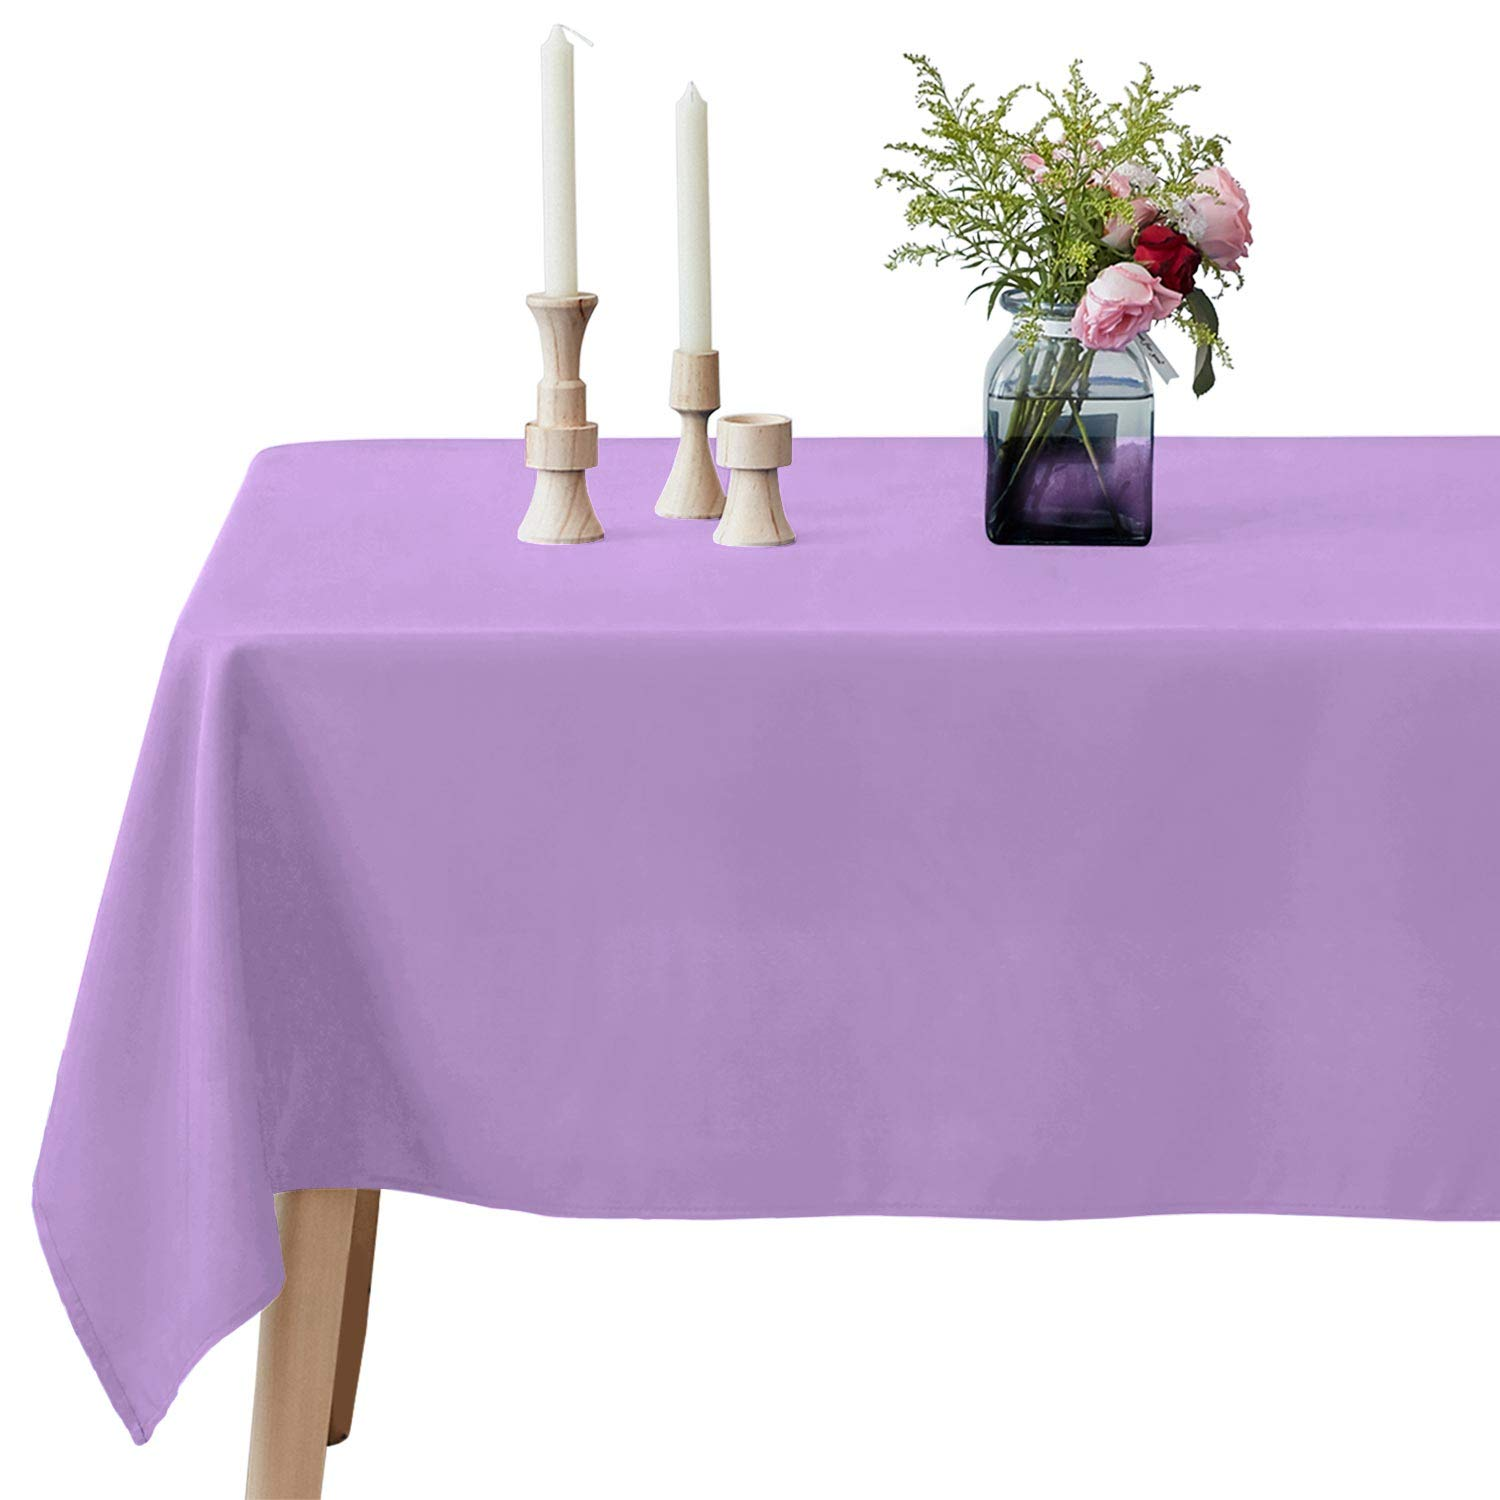 VEEYOO Rectangle Tablecloth - 60 x 126 Inch Polyester Table Cloth for 6 Foot Table - Soft Washable Oblong Lavender Table Cloths for Wedding, Parties, Restaurant, Dinner, Buffet Table and More